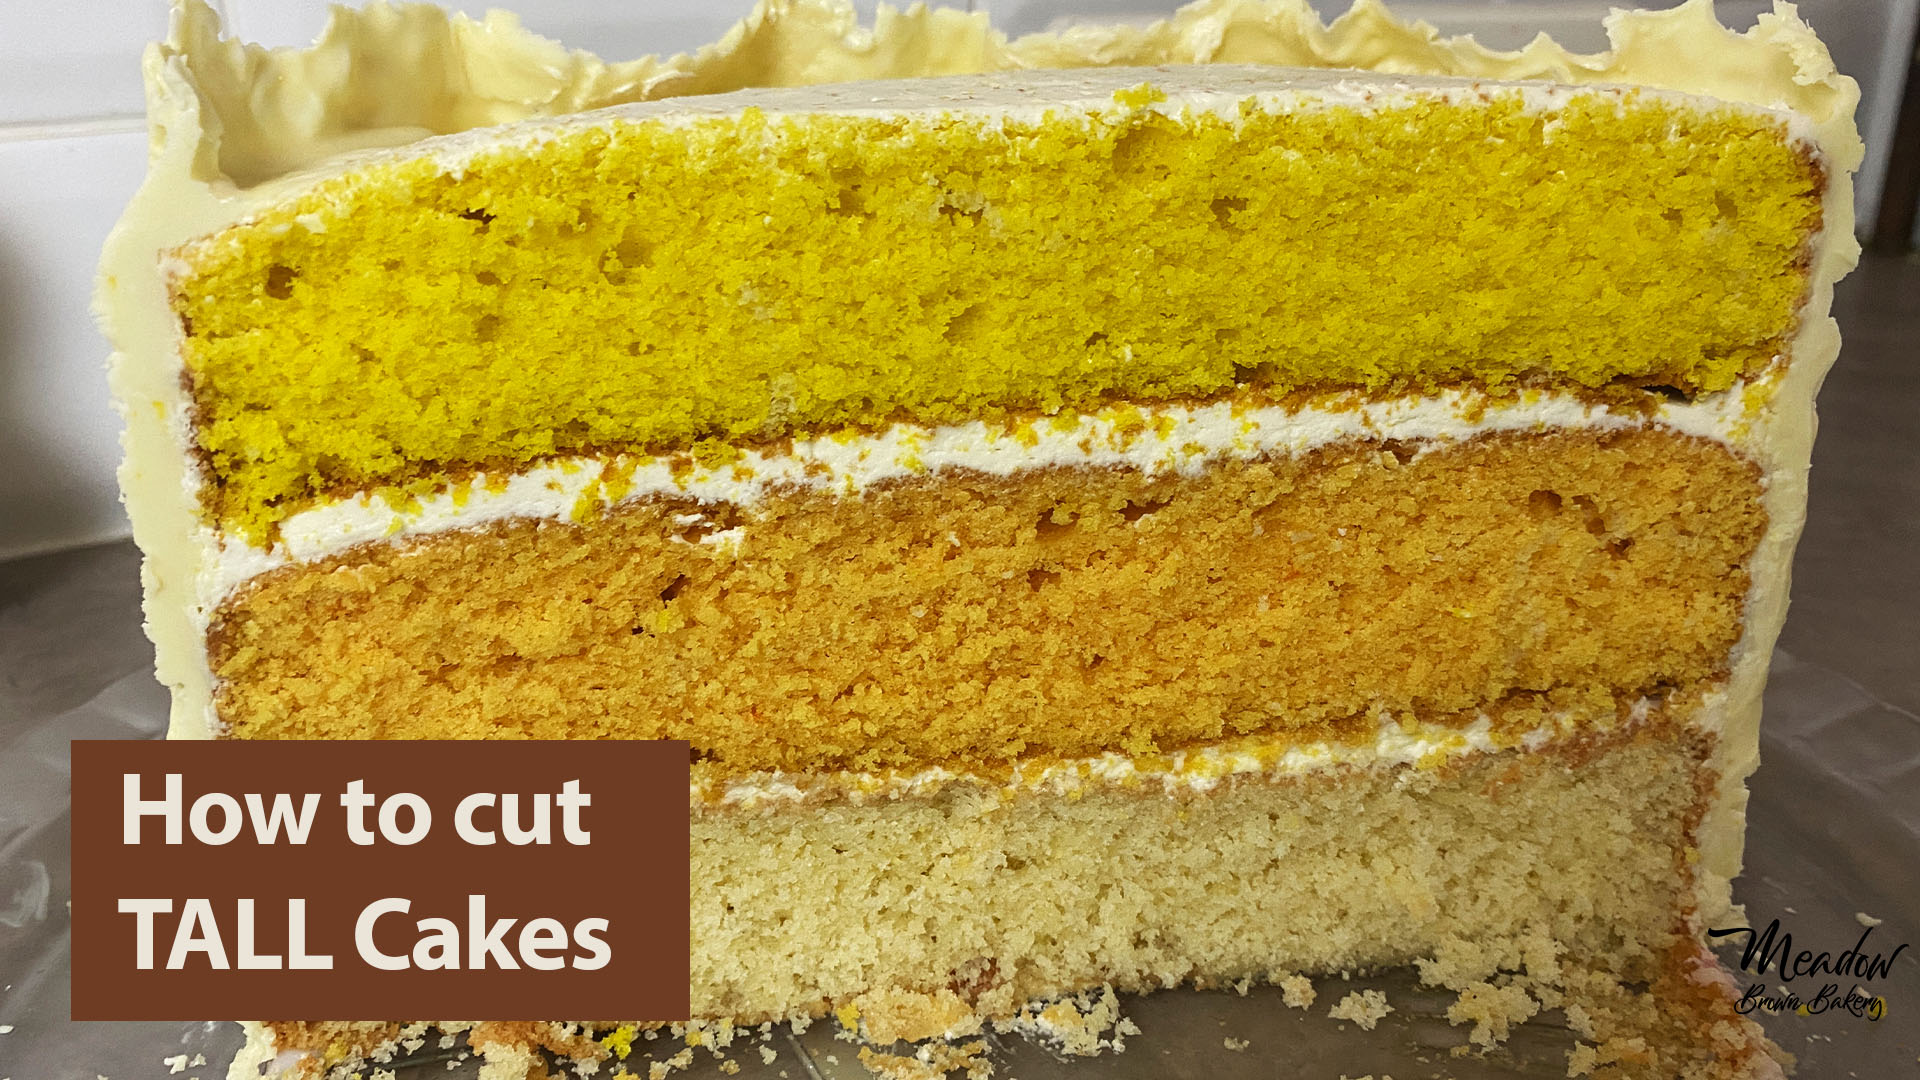 Tall cake cutting guide